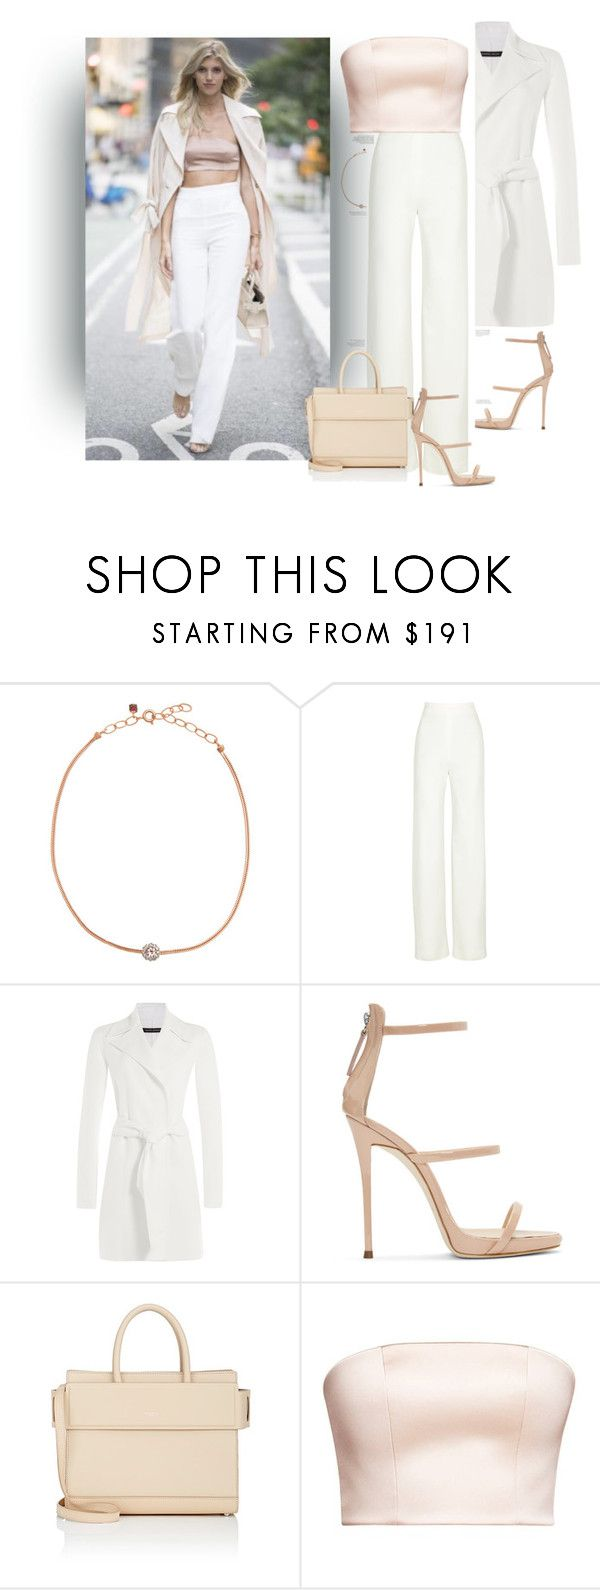 """Devon Windsor"" by jewellife ❤ liked on Polyvore featuring Selim Mouzannar, Brandon Maxwell, Ralph Lauren Black Label, Giuseppe Zanotti and Givenchy"